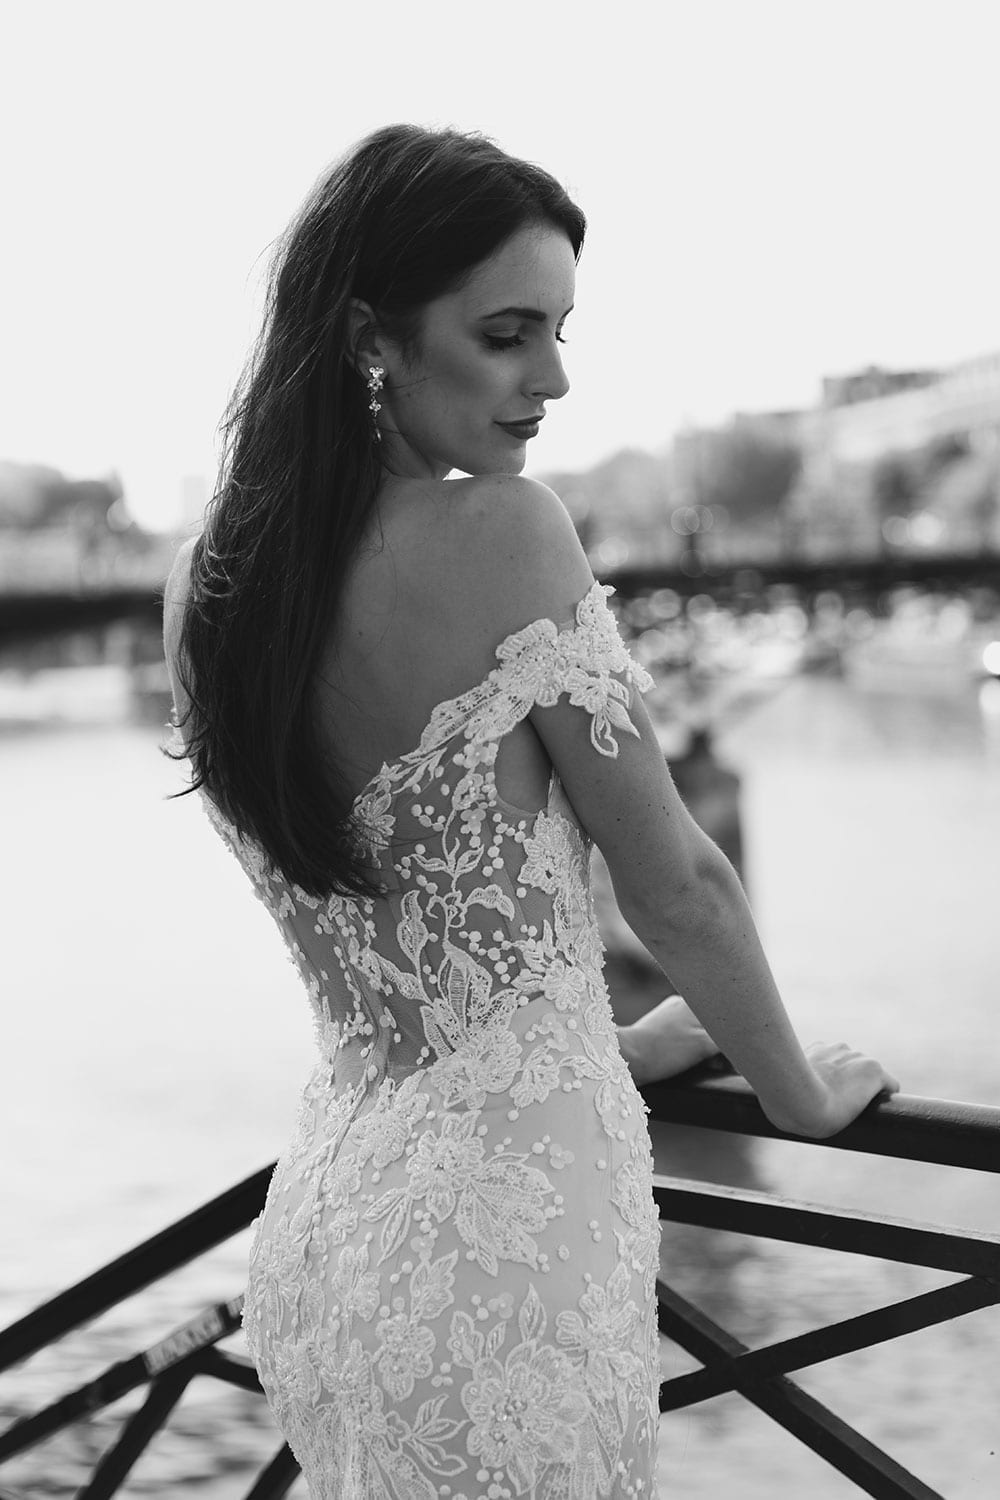 Model wearing Vinka Design Sashia Wedding Dress, an Off-Shoulder Fitted Lace and Tulle Gown on Paris balcony looking to river in black and white